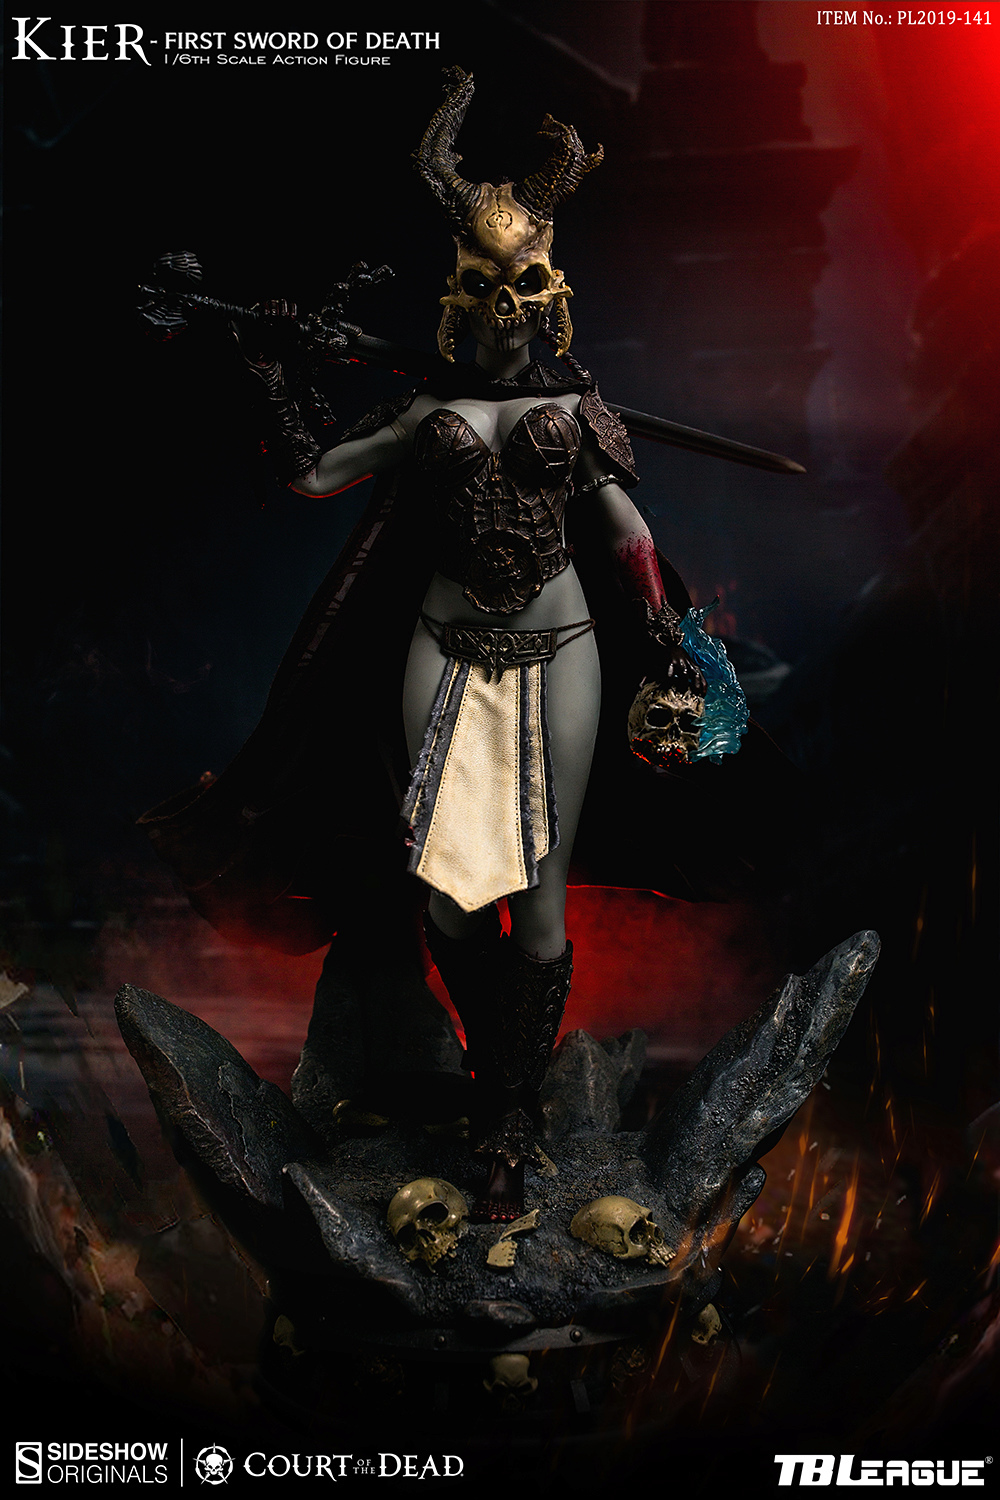 horror - NEW PRODUCT: TBLeague & Sideshow: 1/6 Court of the Dead - Valkyrie Cole / Kier movable doll (PL2019-141) 16260110